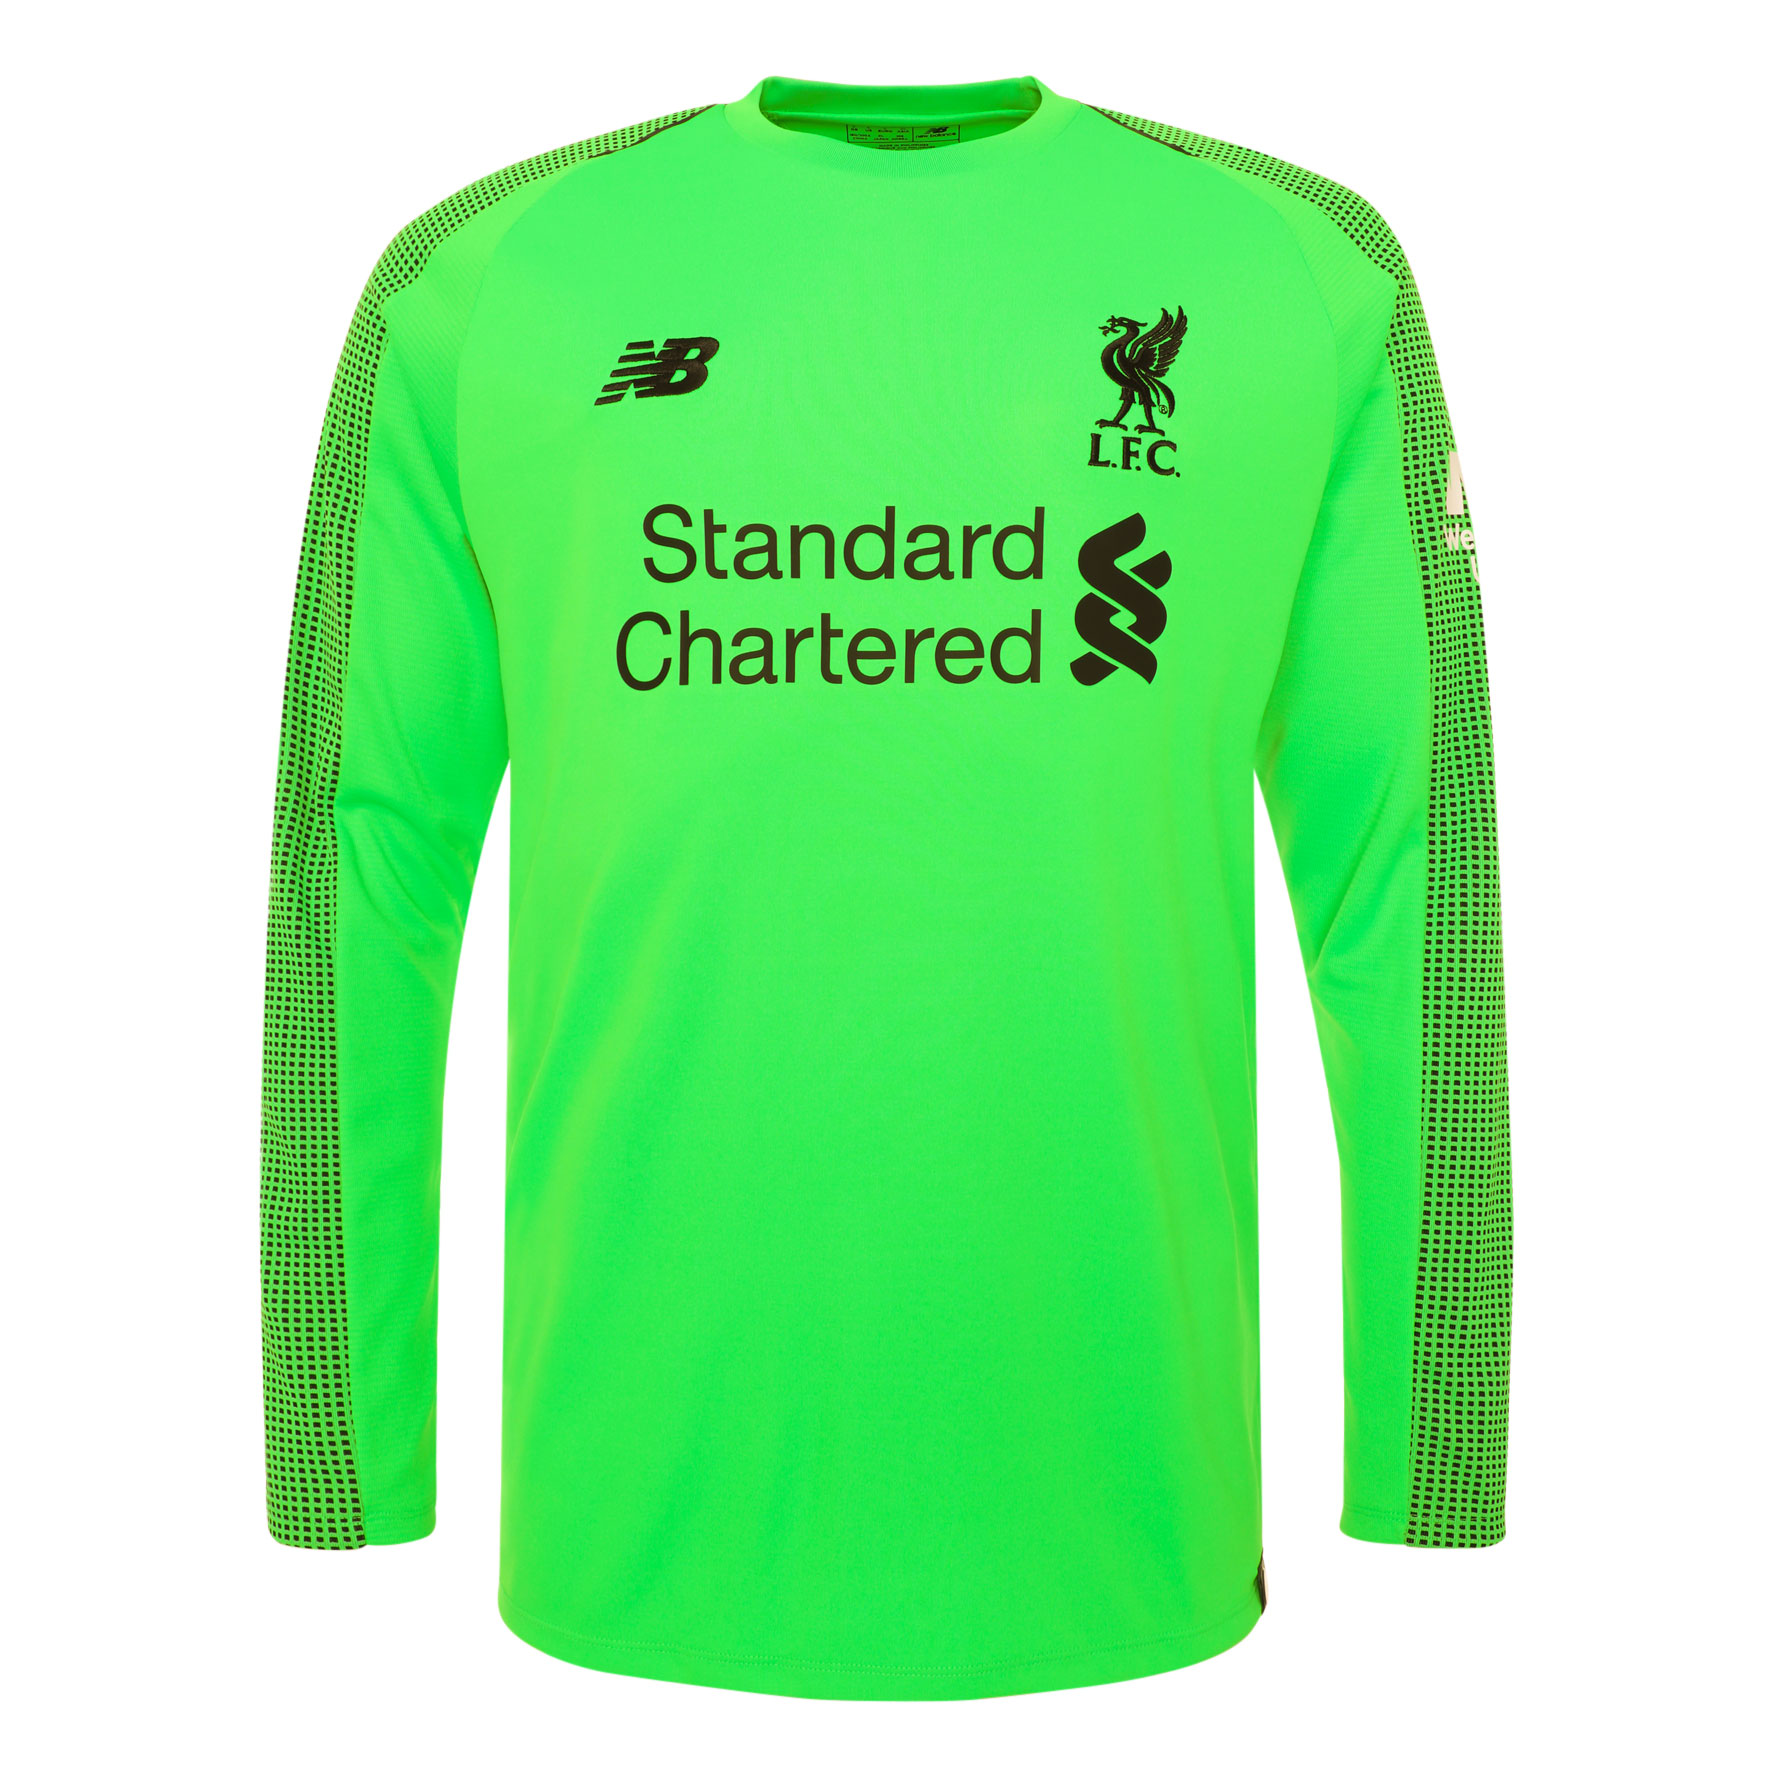 reputable site a85c1 39203 Out now: LFC launches new away kit for 2018-19 - Liverpool FC